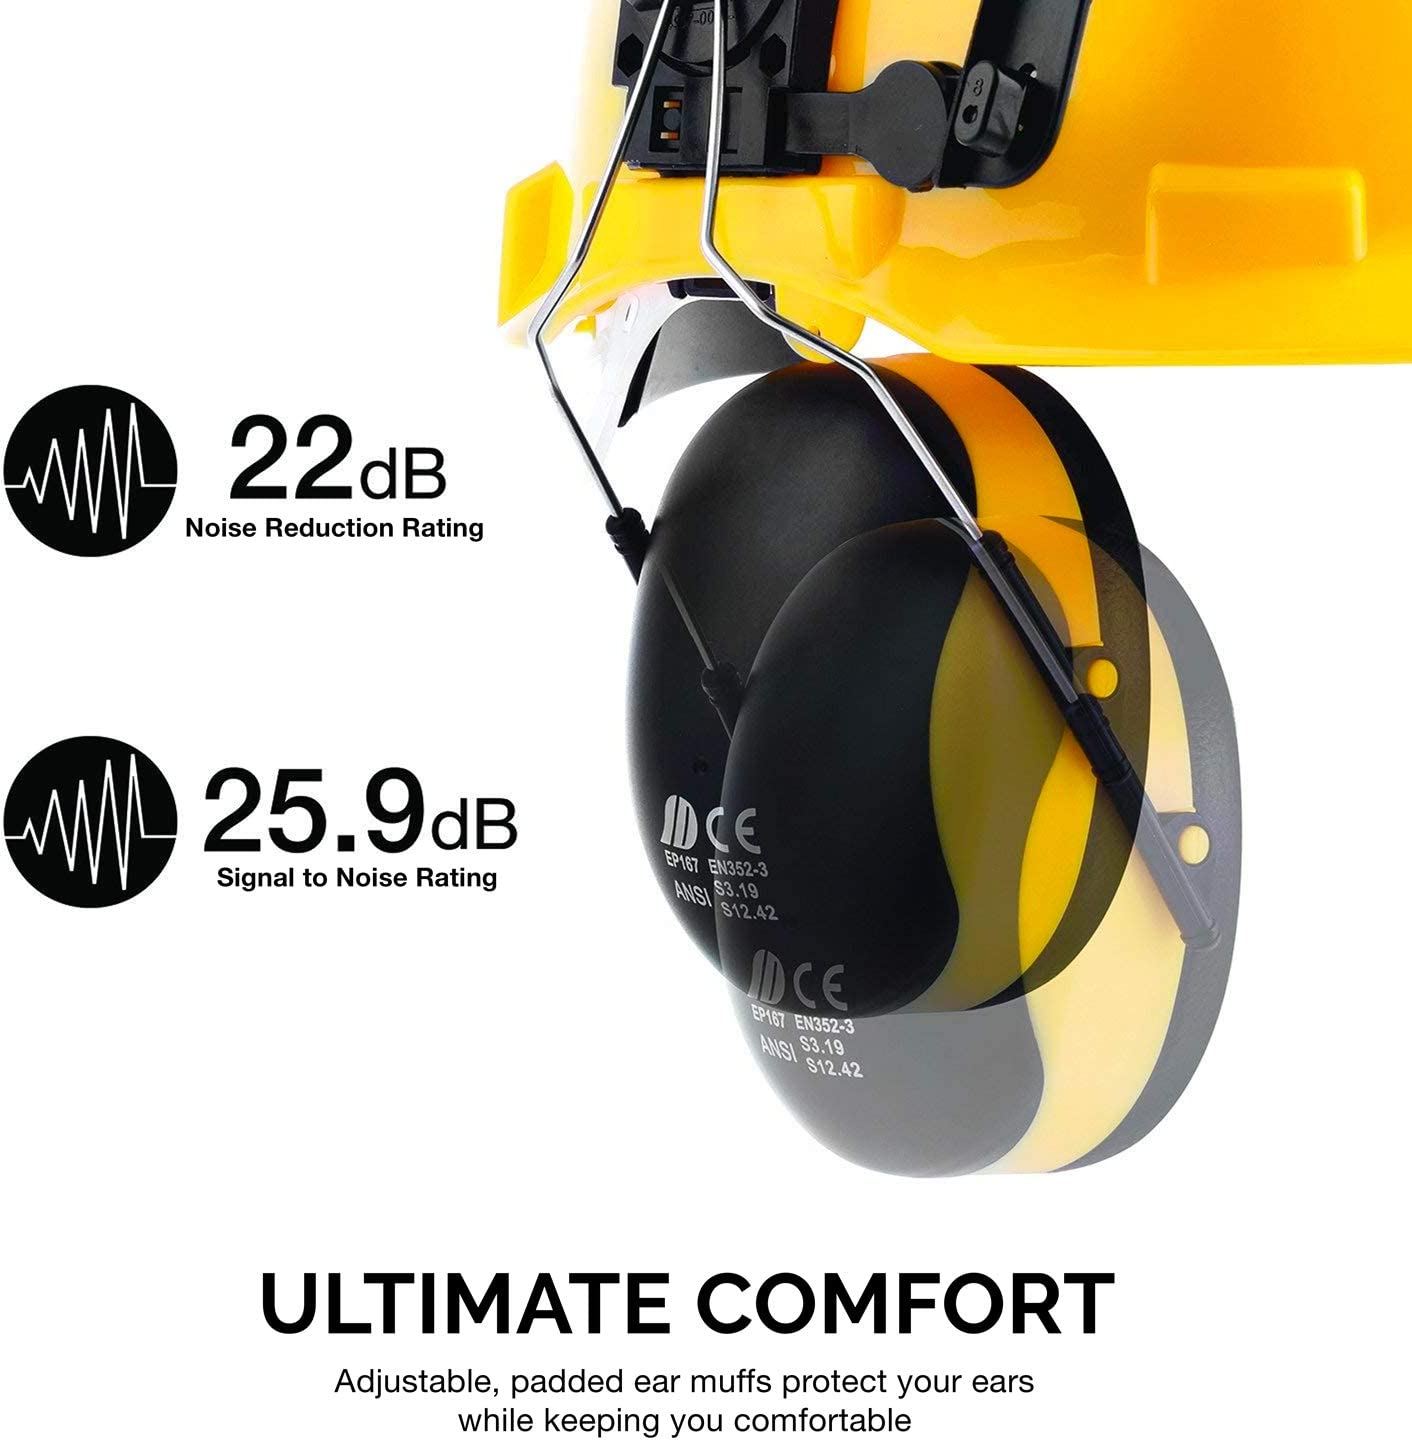 Amazon.com: Neiko 53880A Casco de seguridad 4 en 1 con ...